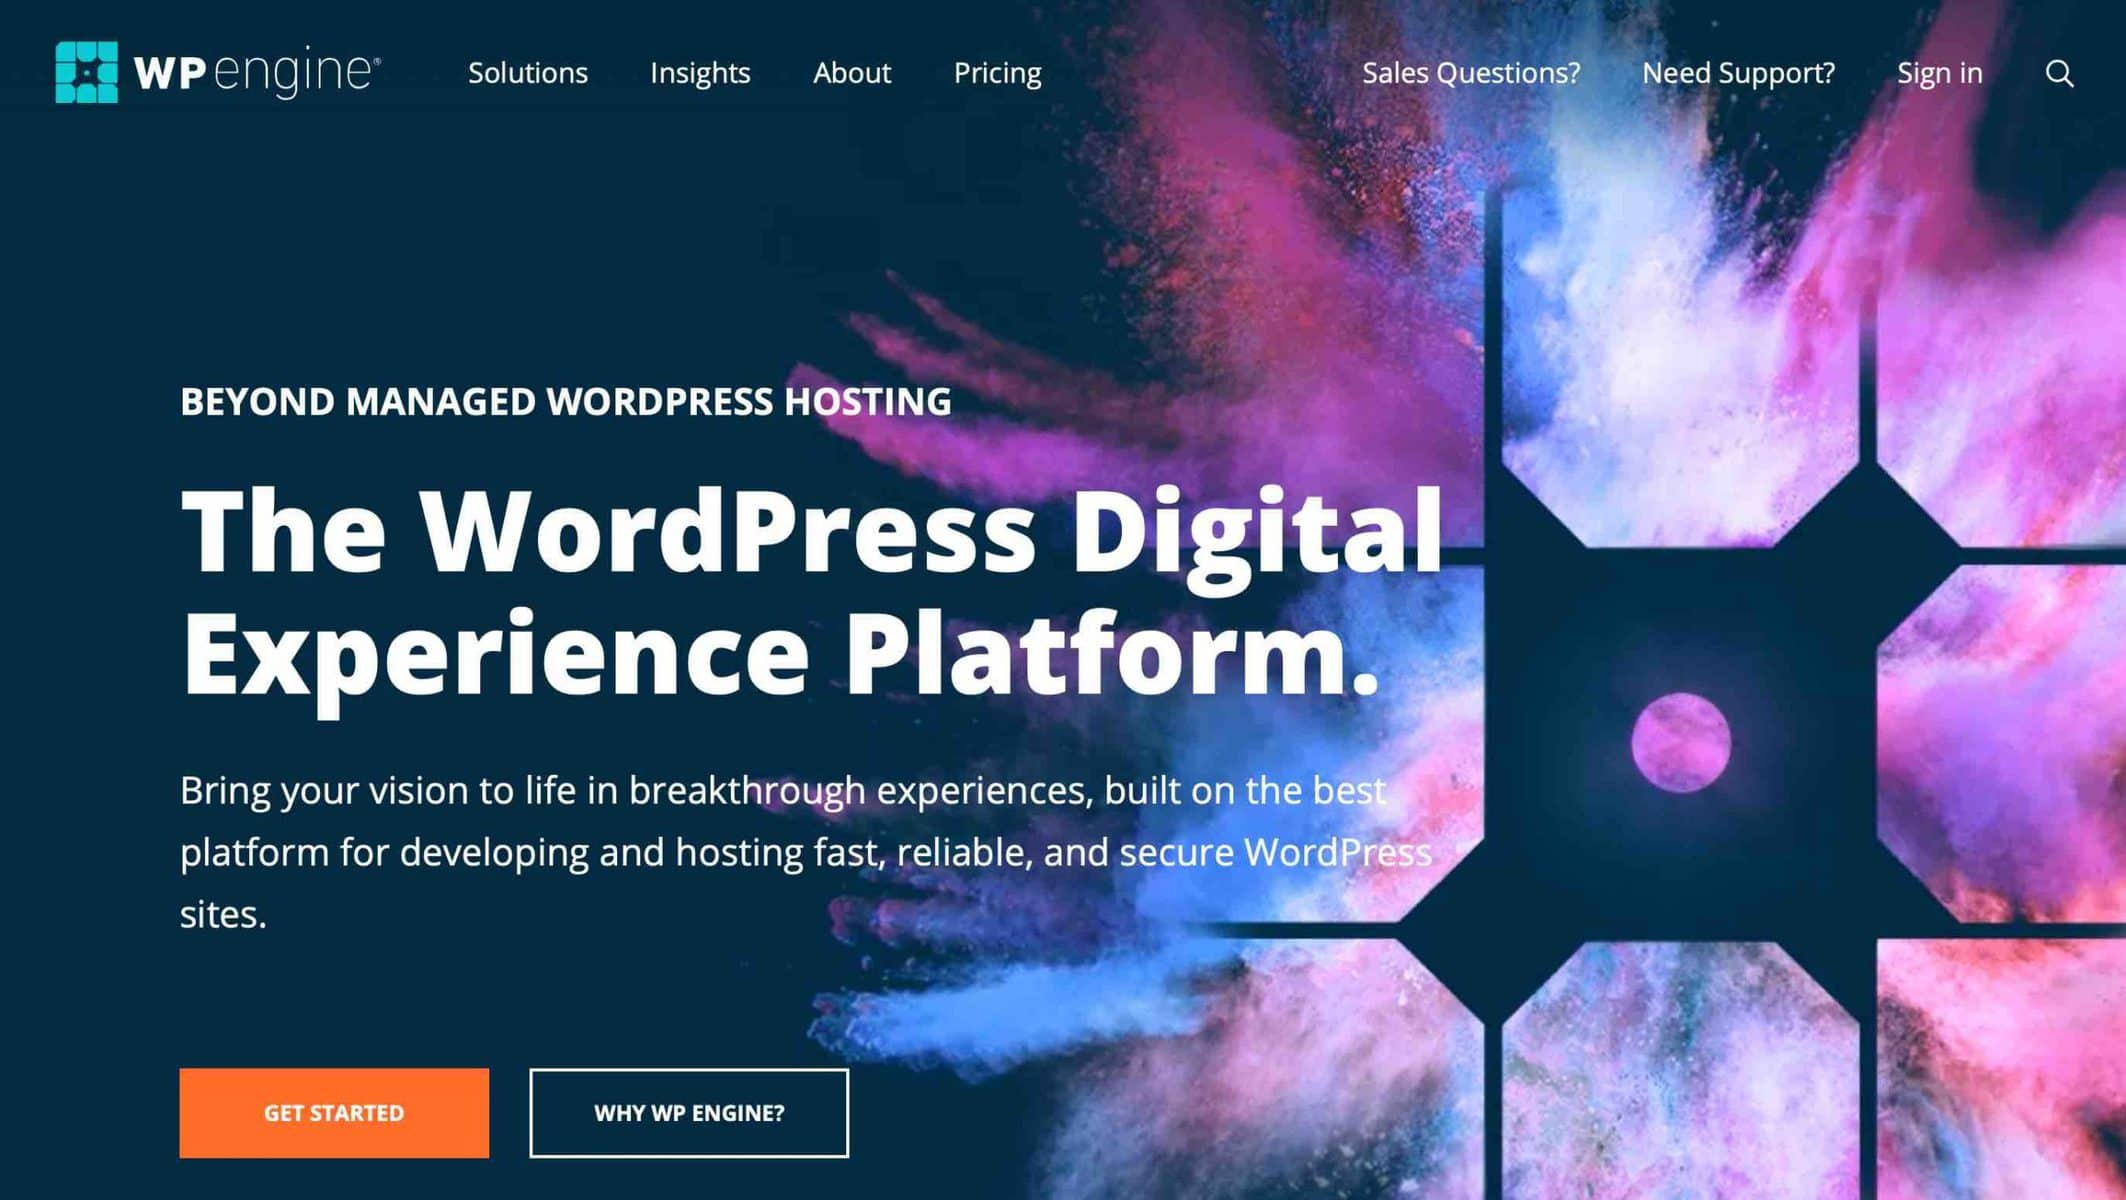 The WordPress Digital Experience Platform